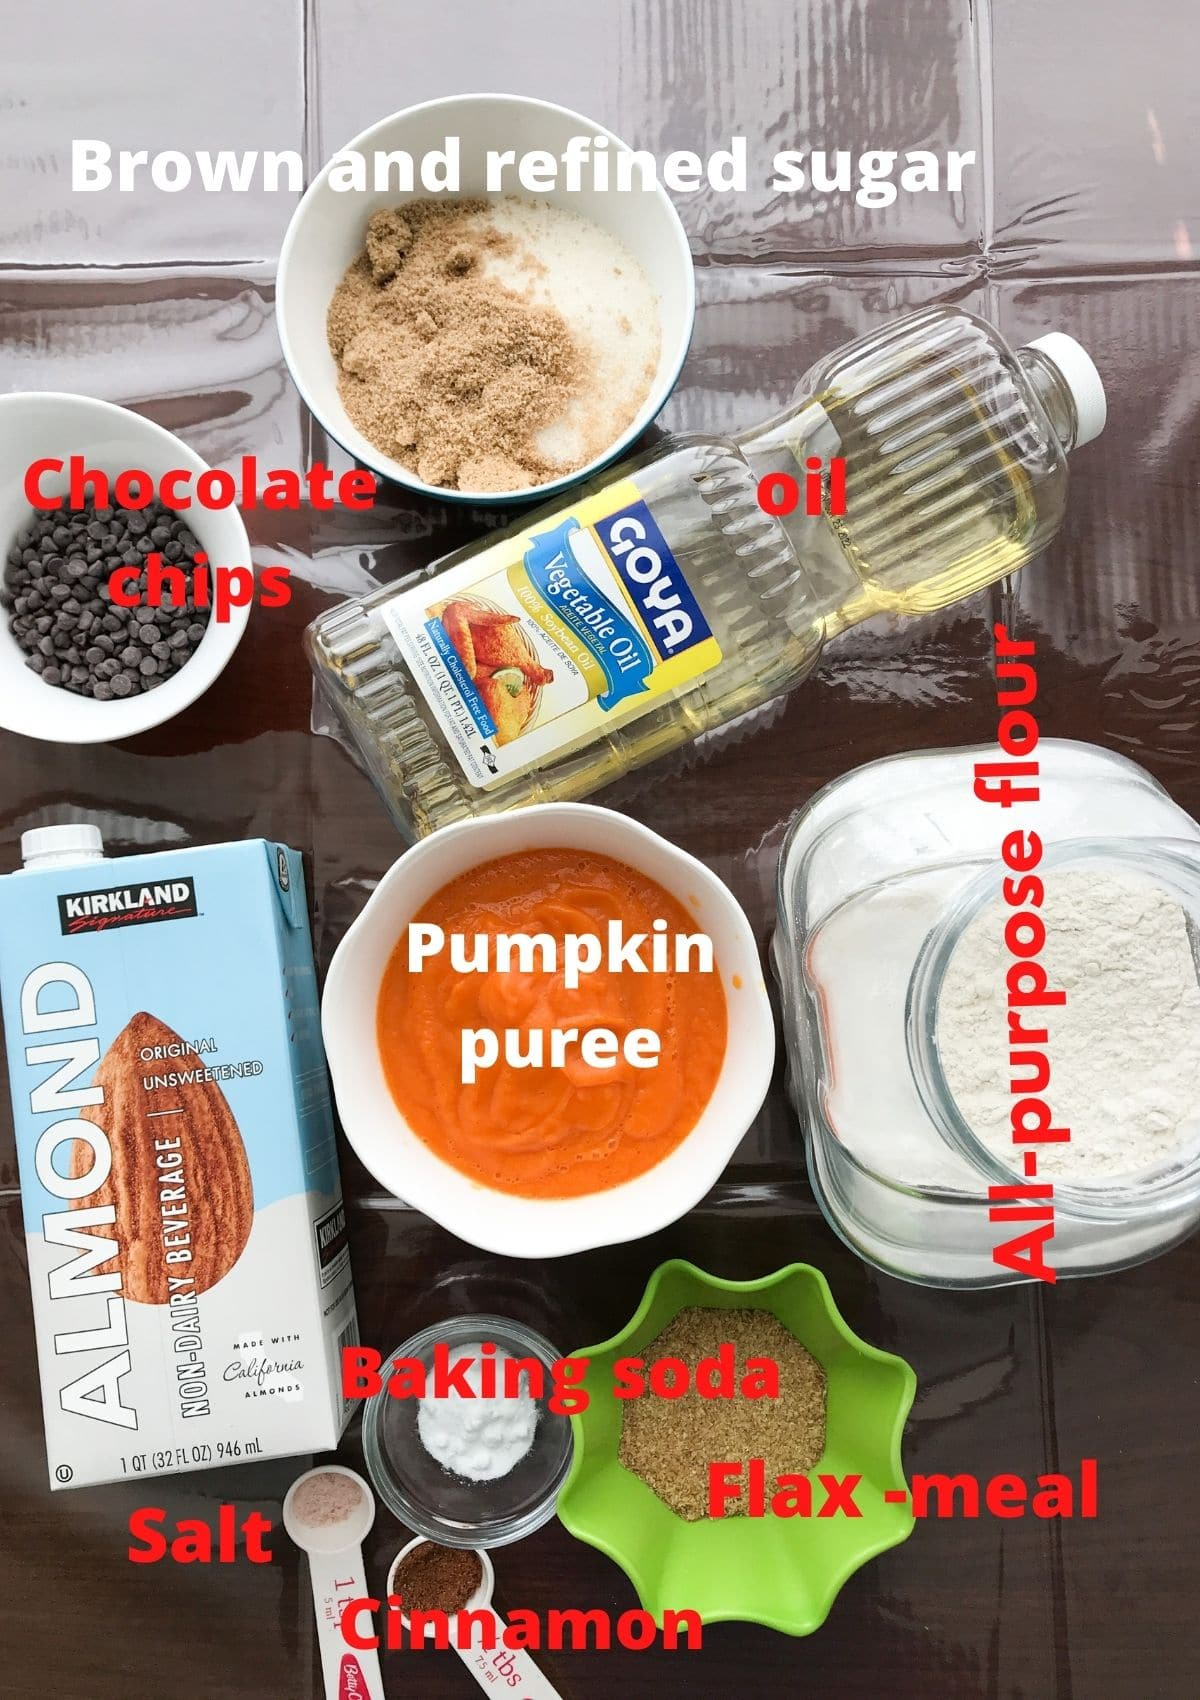 All the ingredients are placed on the table for pumpkin bread